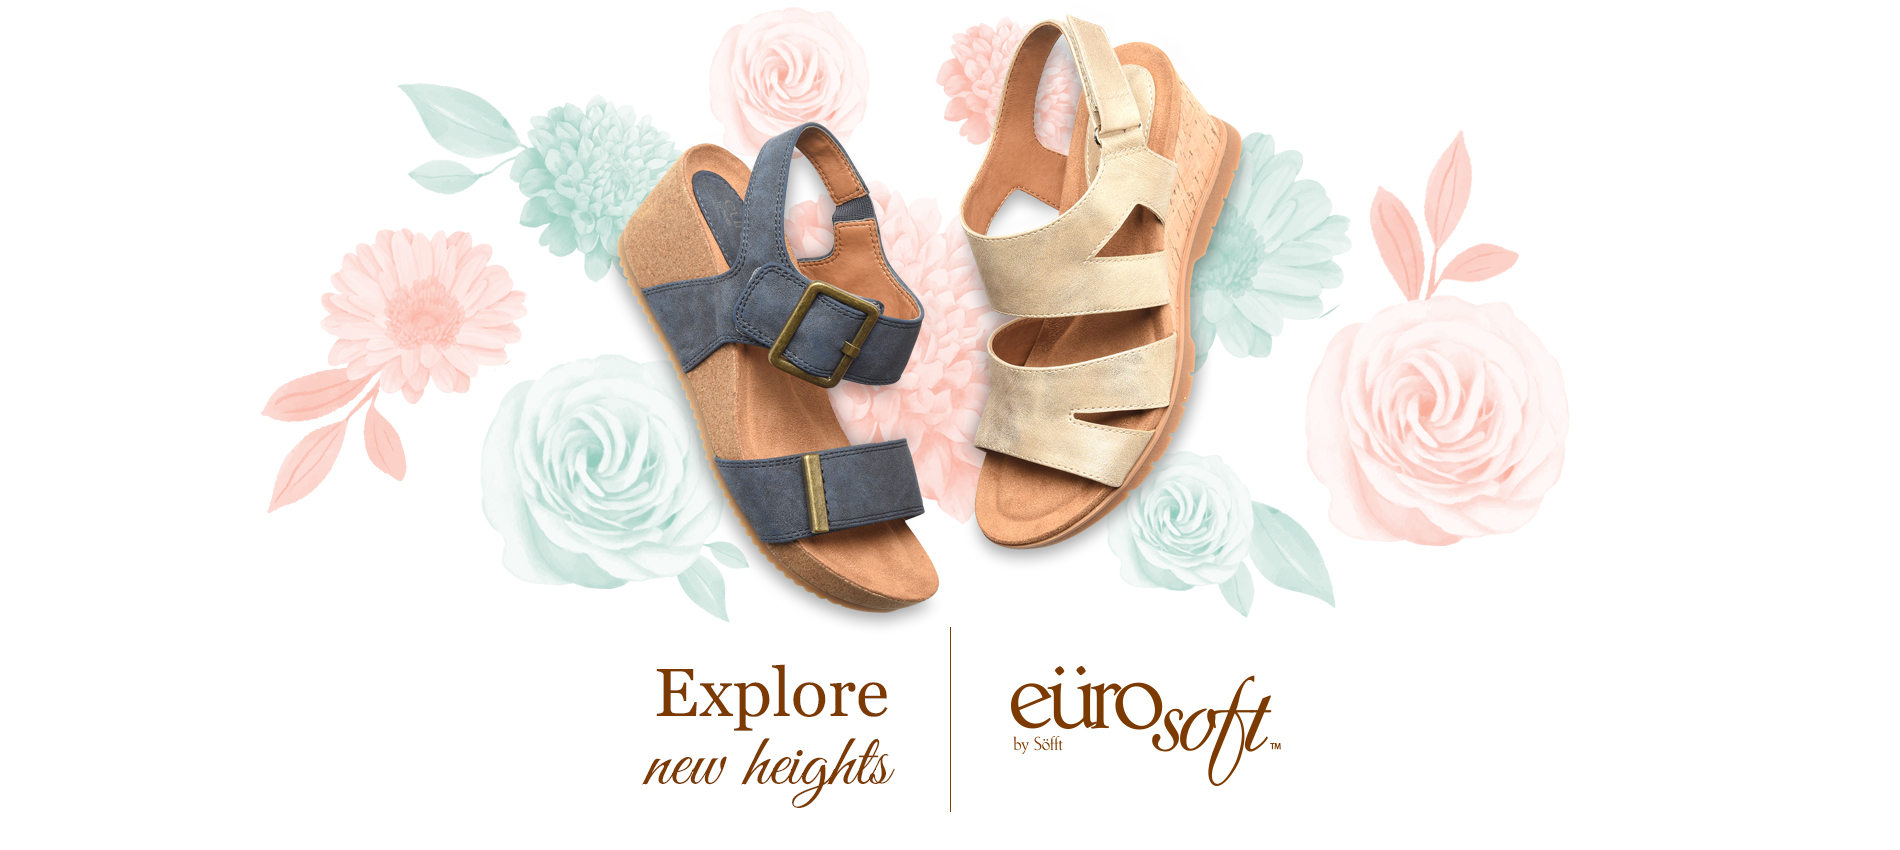 Explore new heights. Eurosoft by Sofft. Shop All Styles